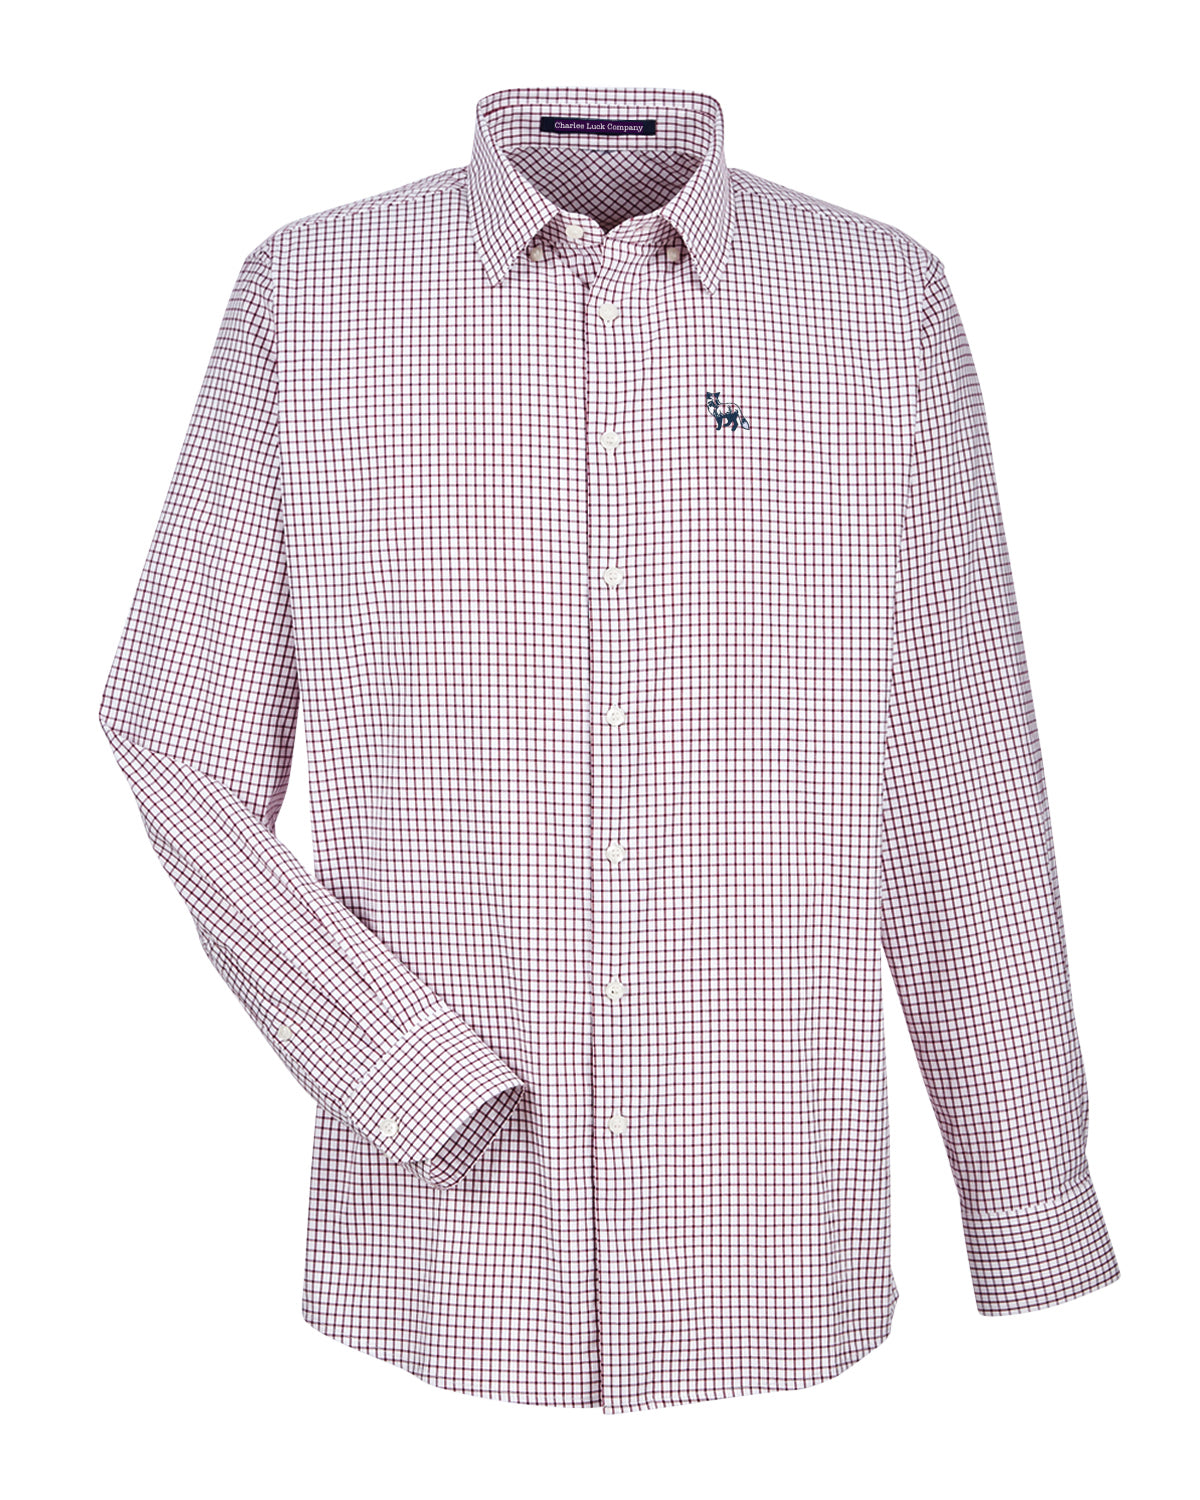 The Sport Button Down Burgundy